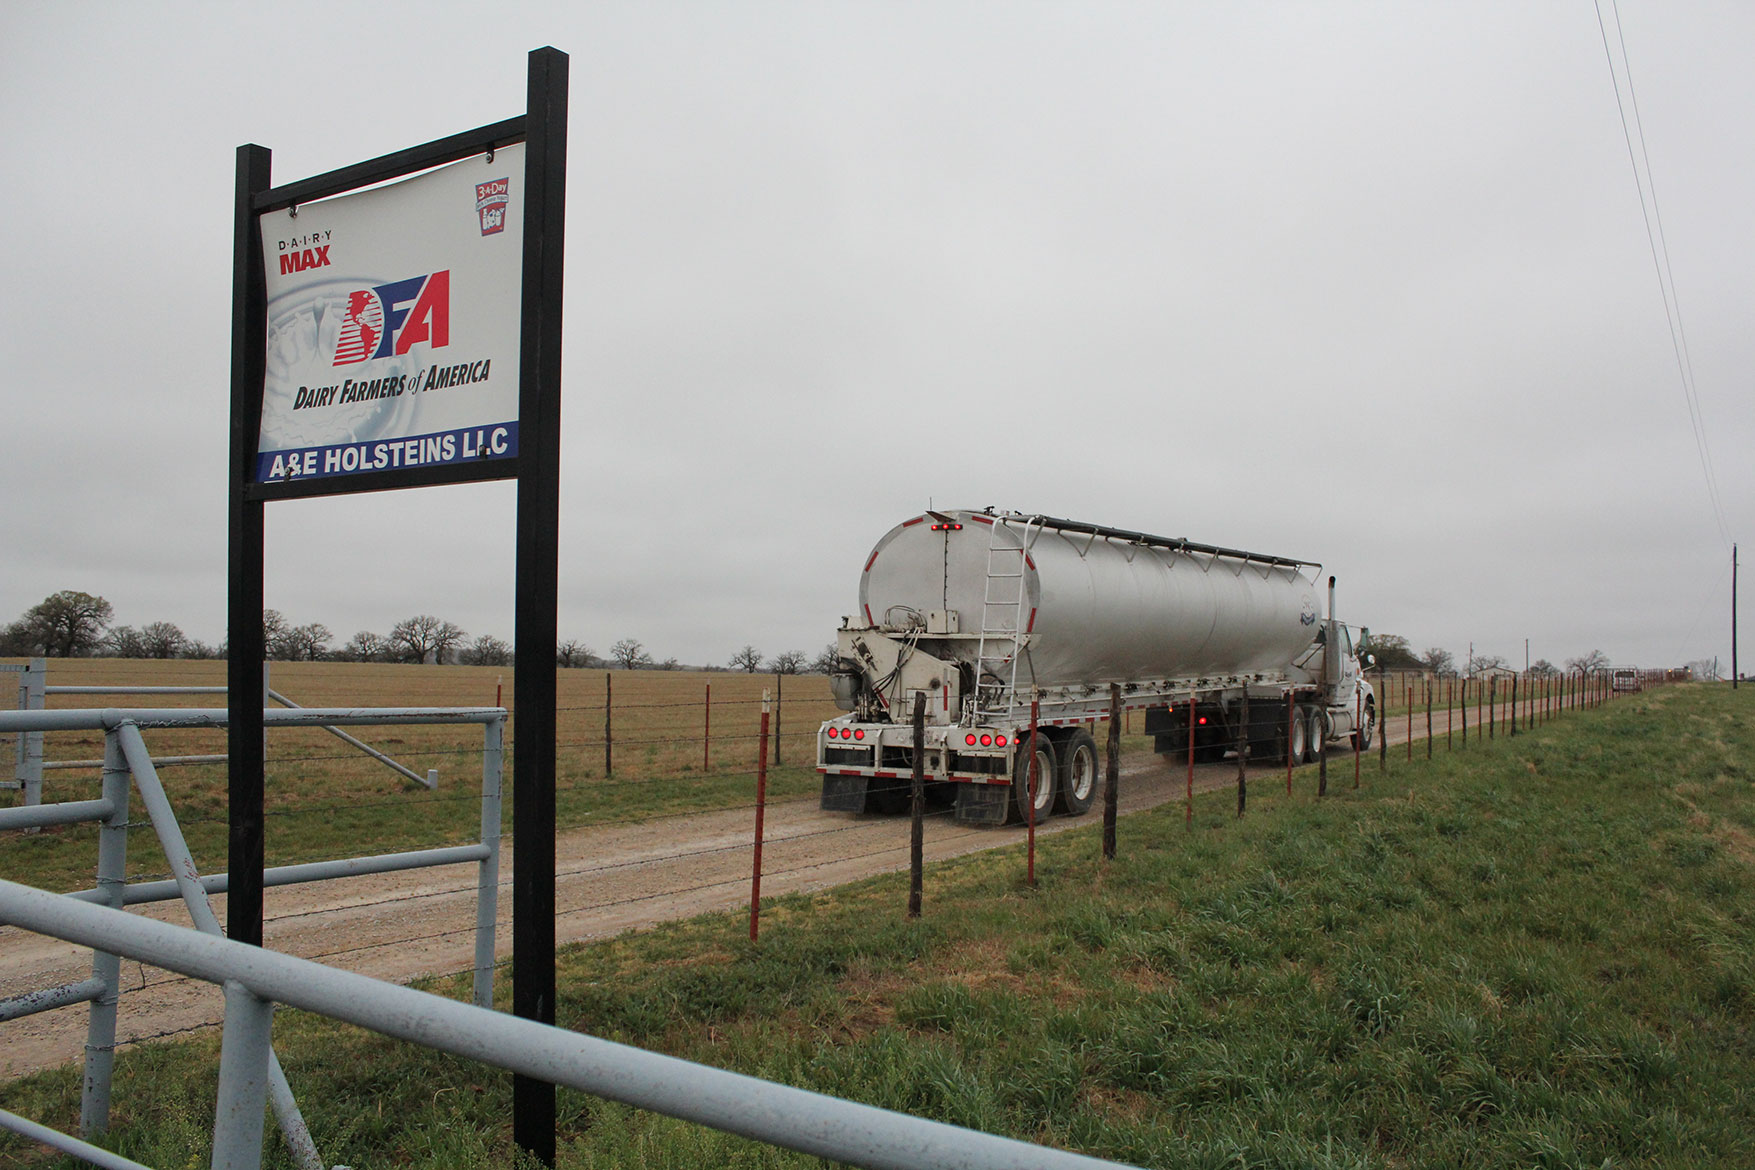 The feed truck delivers feed ingredients to the dairy farm.